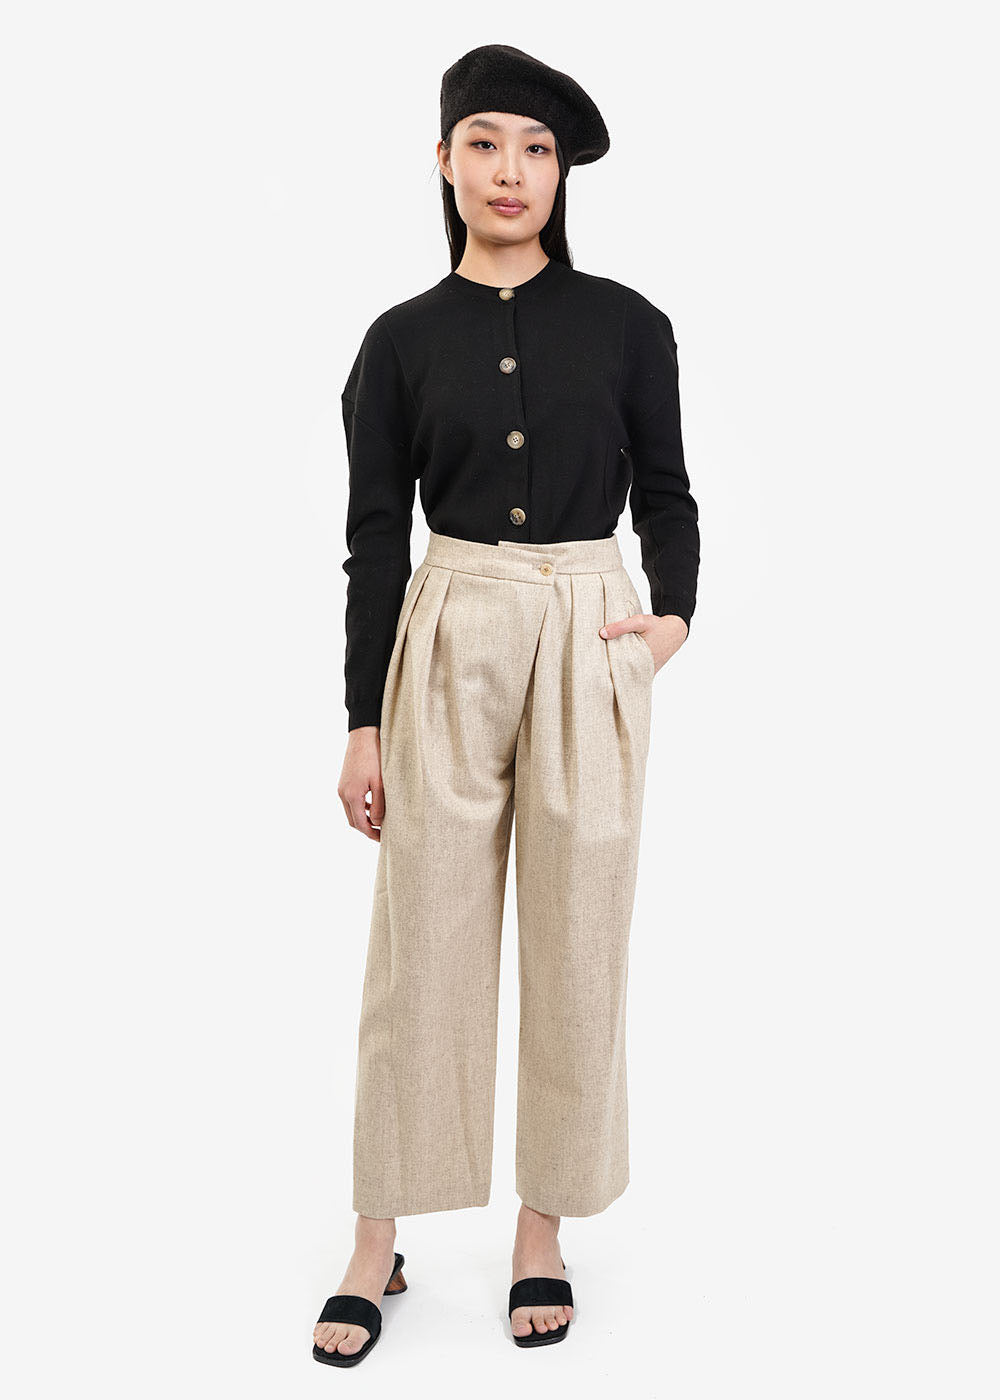 AMOMENTO Wool Wrap Pants — Shop sustainable fashion and slow fashion at New Classics Studios